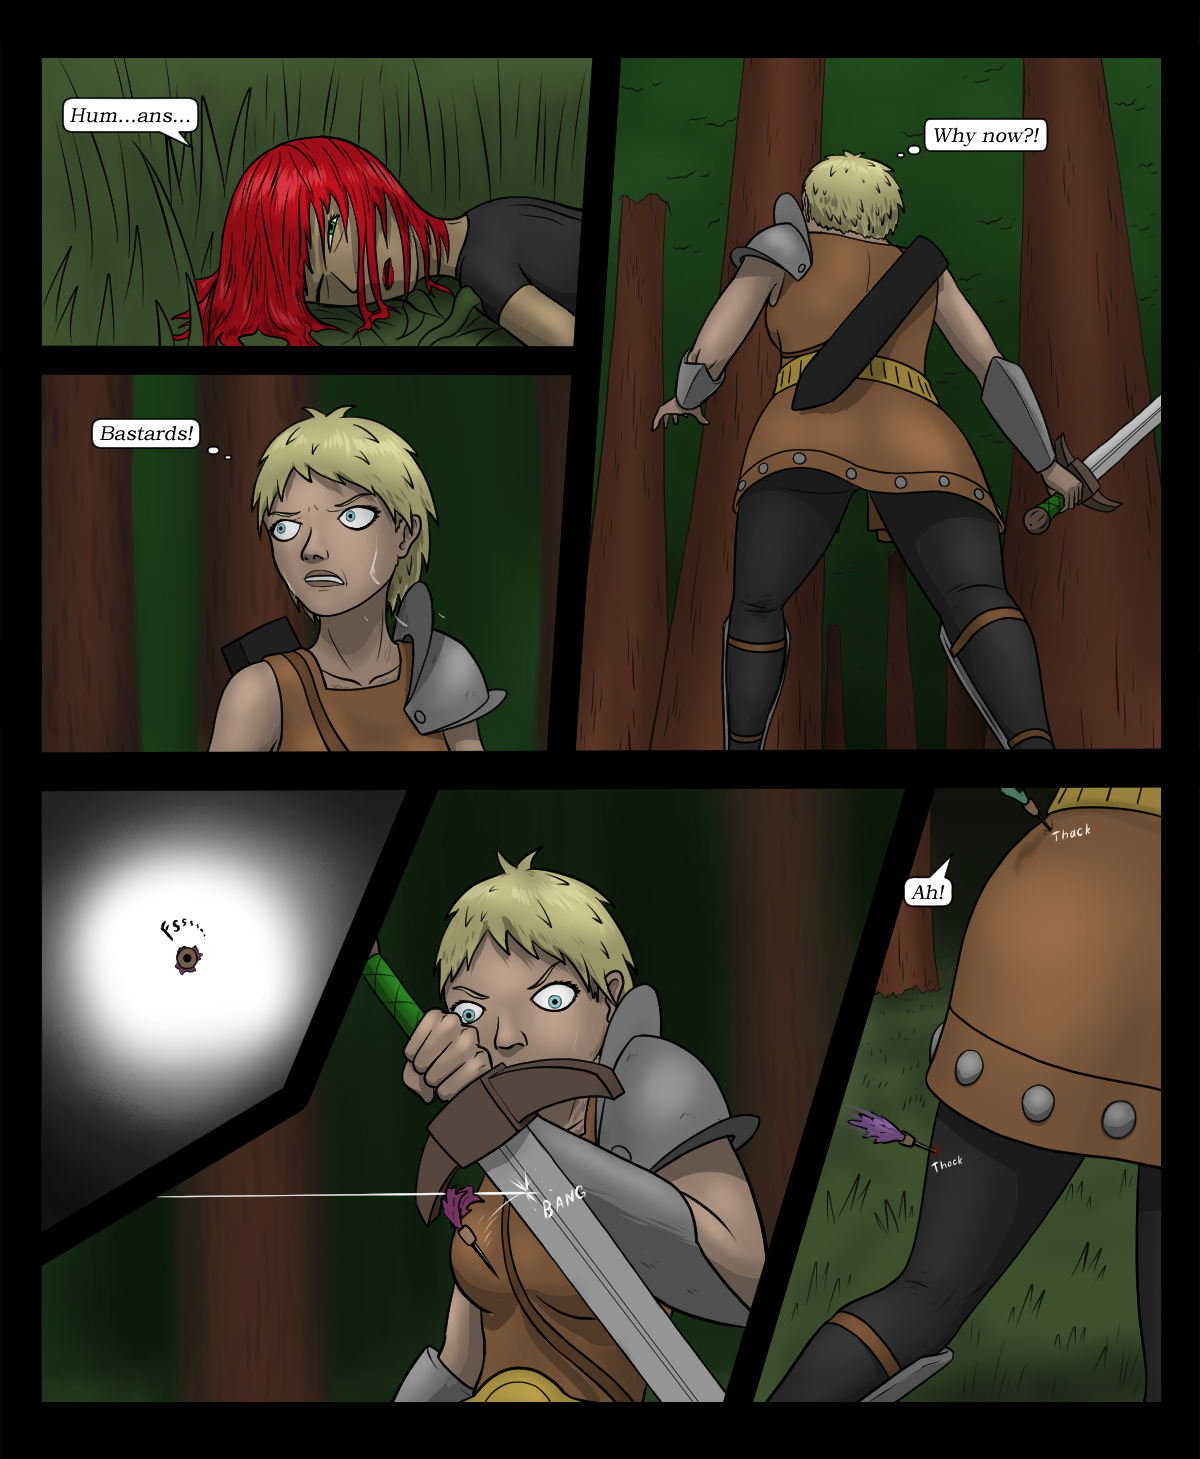 Page 86 - The fitting moment